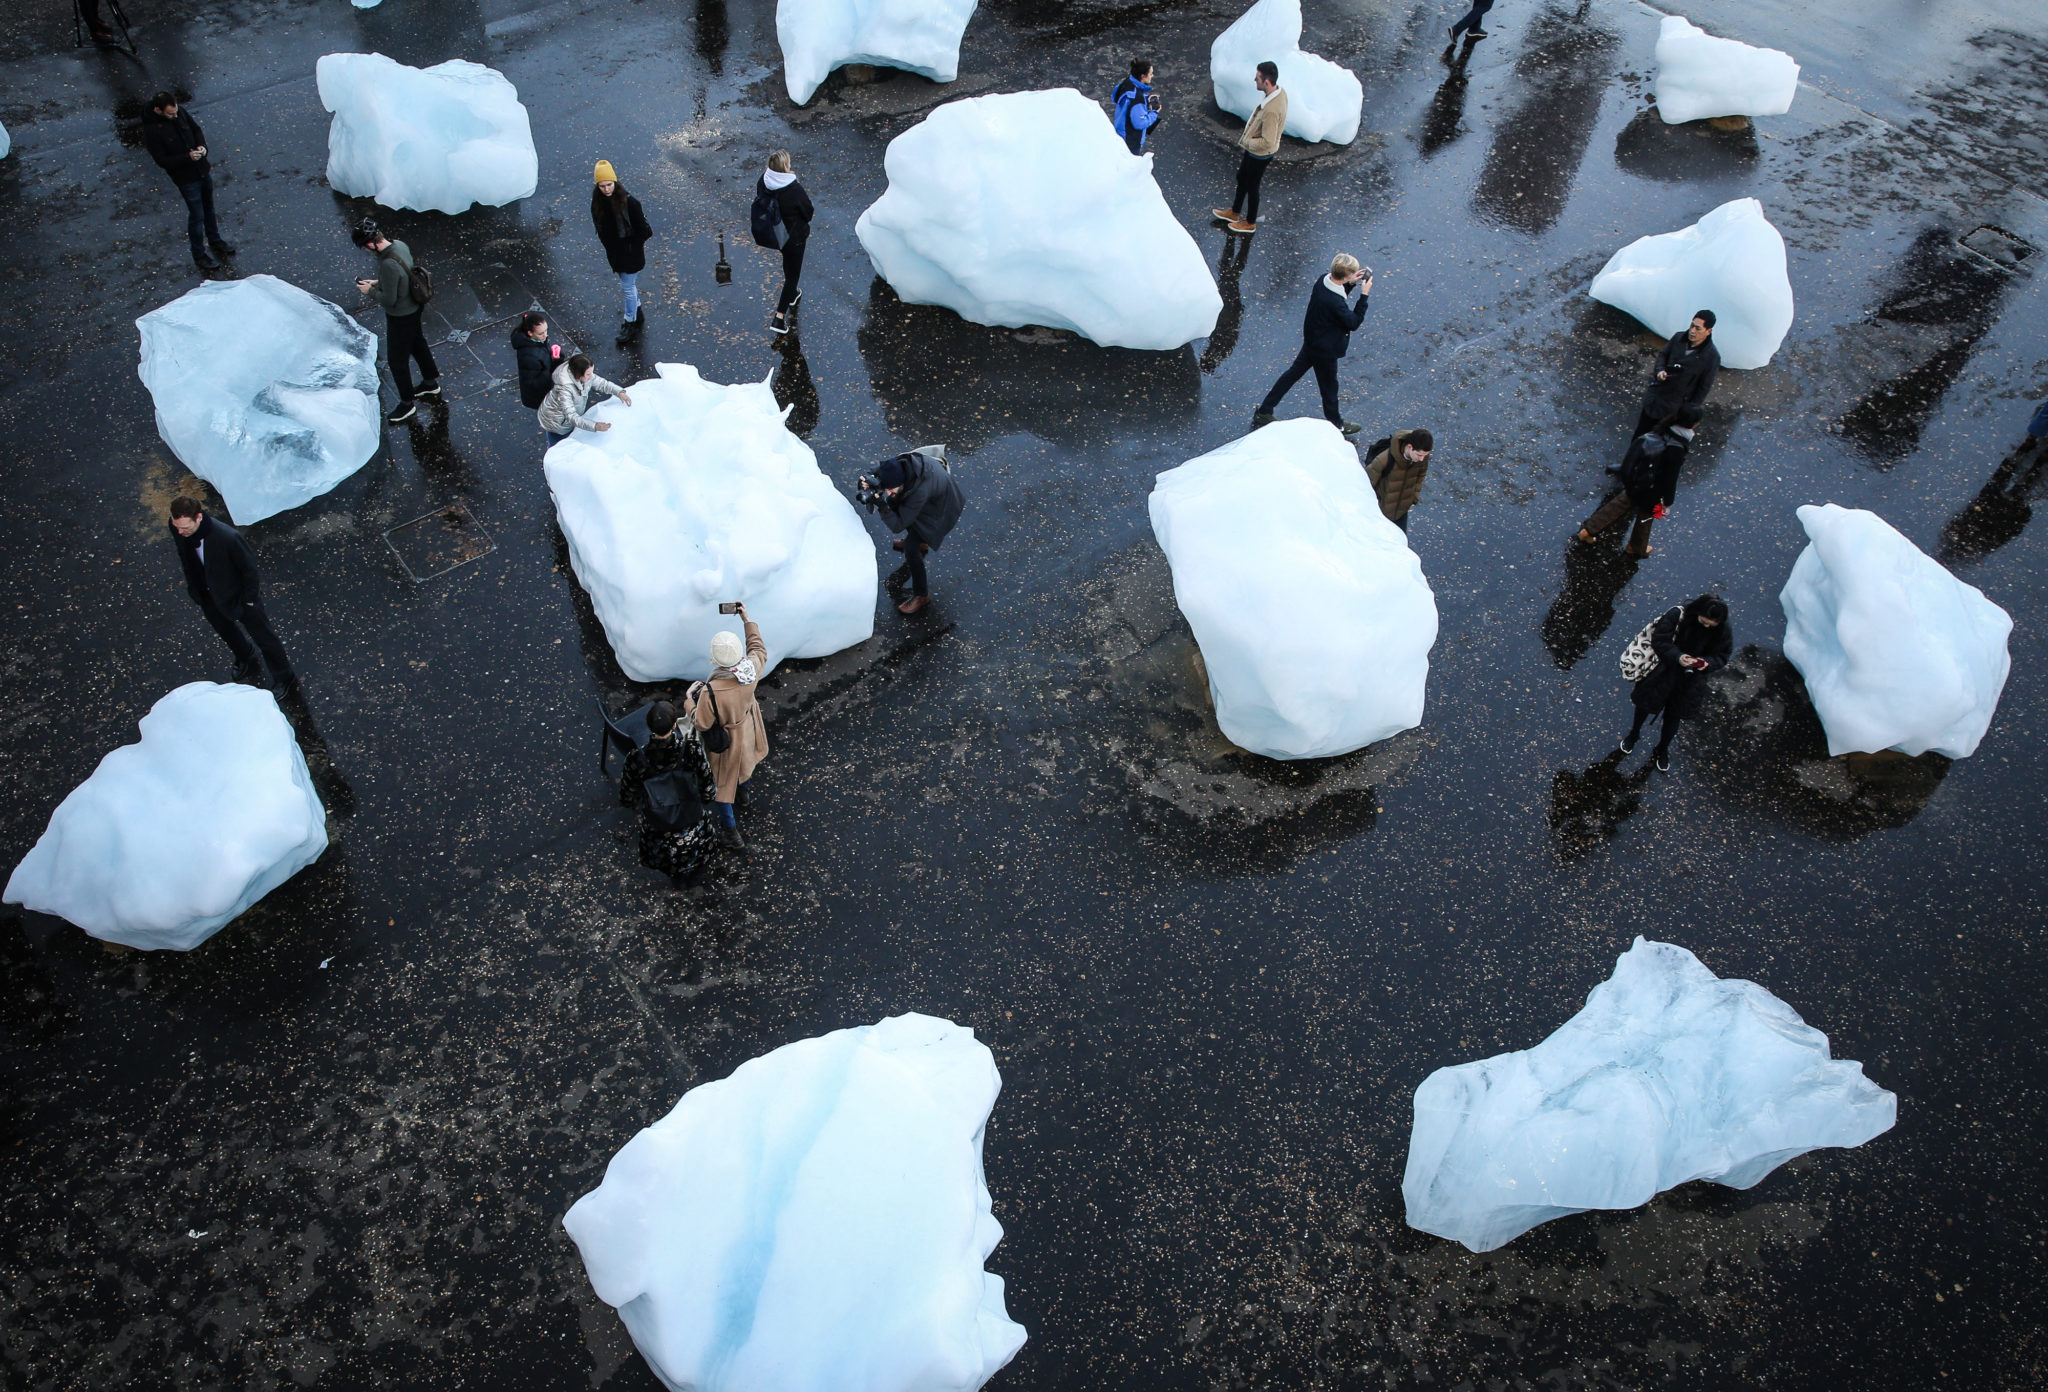 Ice Watch, created by Eliasson from 24 blocks of ice taken from the waters of the Nuup Kangerlua fjord in Greenland, in collaboration with geologist Minik Rosing to inspire public action against climate change, London. Photograph: Matt Alexander/PA Wire